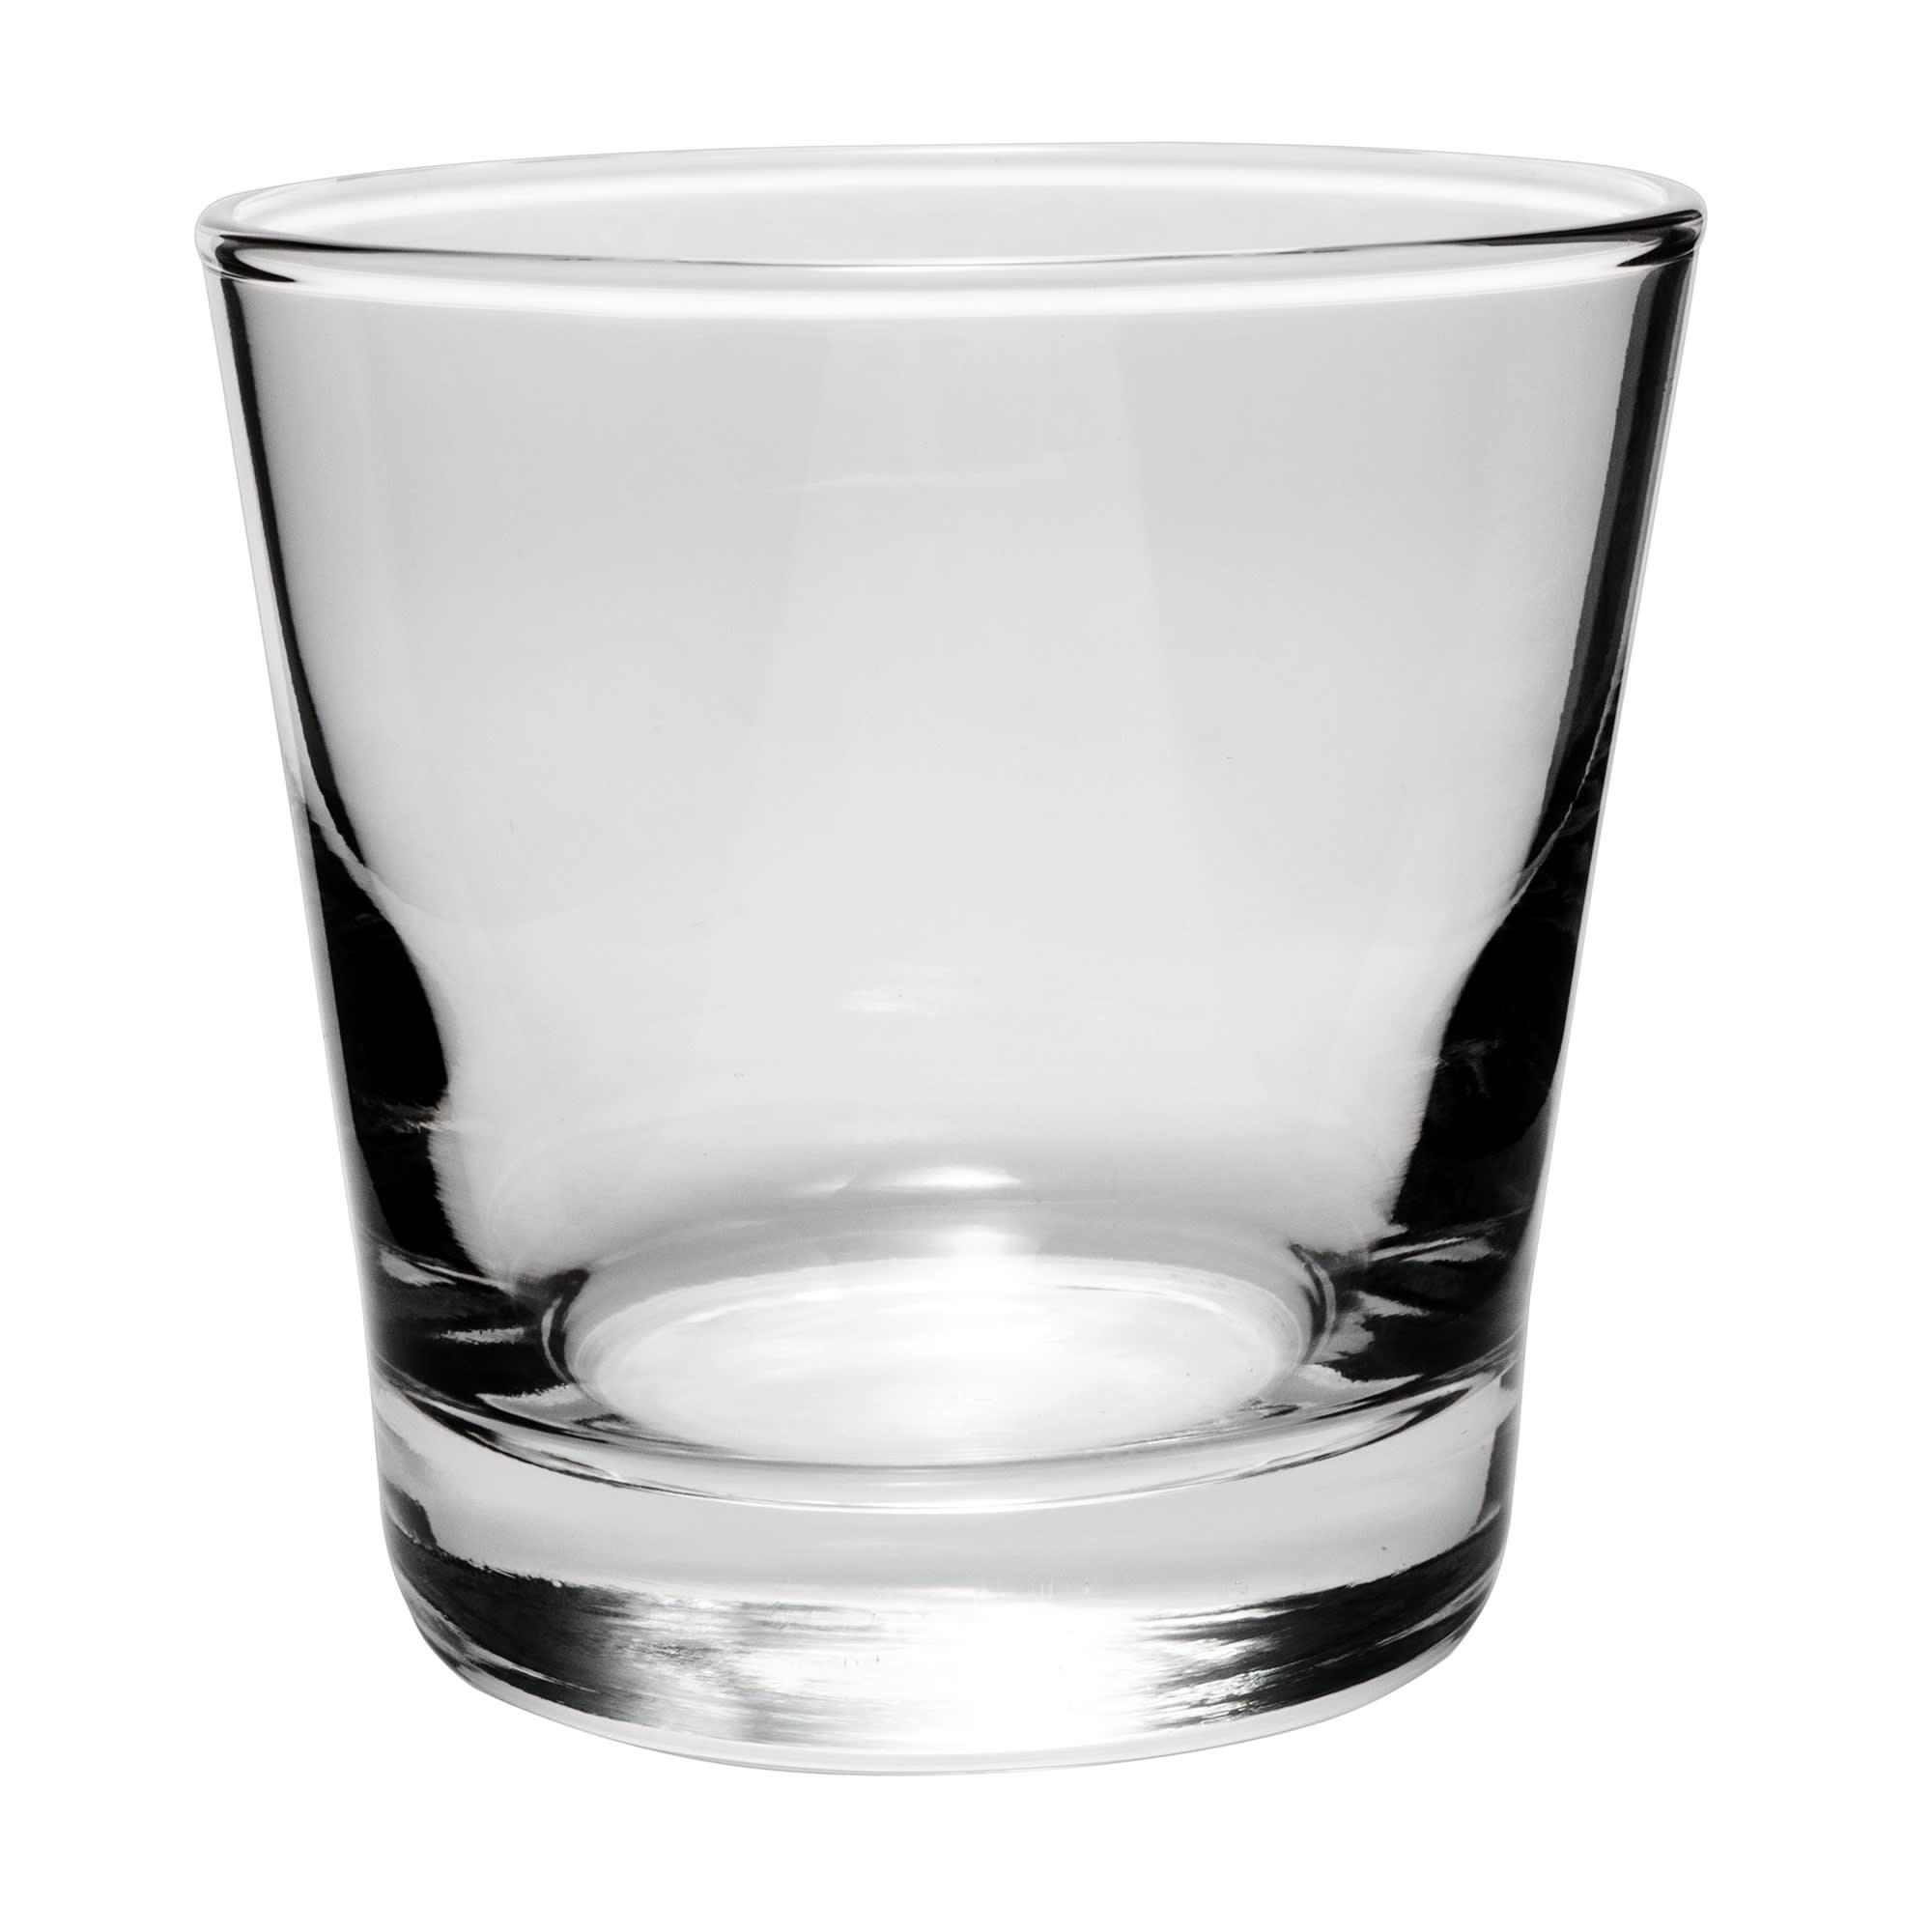 Libbey 124 5.5-oz Old Fashioned Glass - Heavy Base